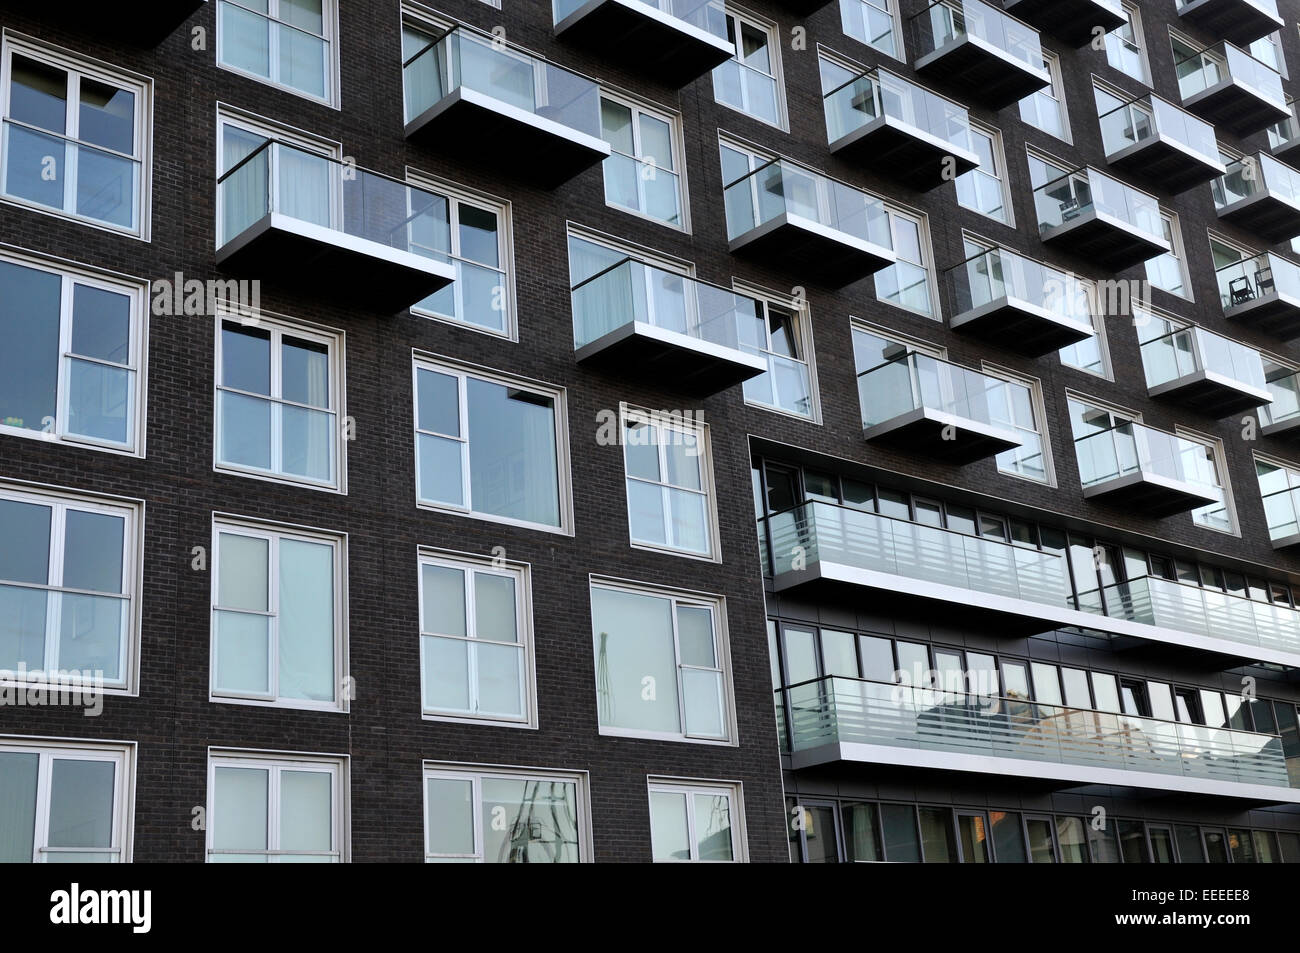 Windows And Balconies On Modern High Rise Apartment Building Stock